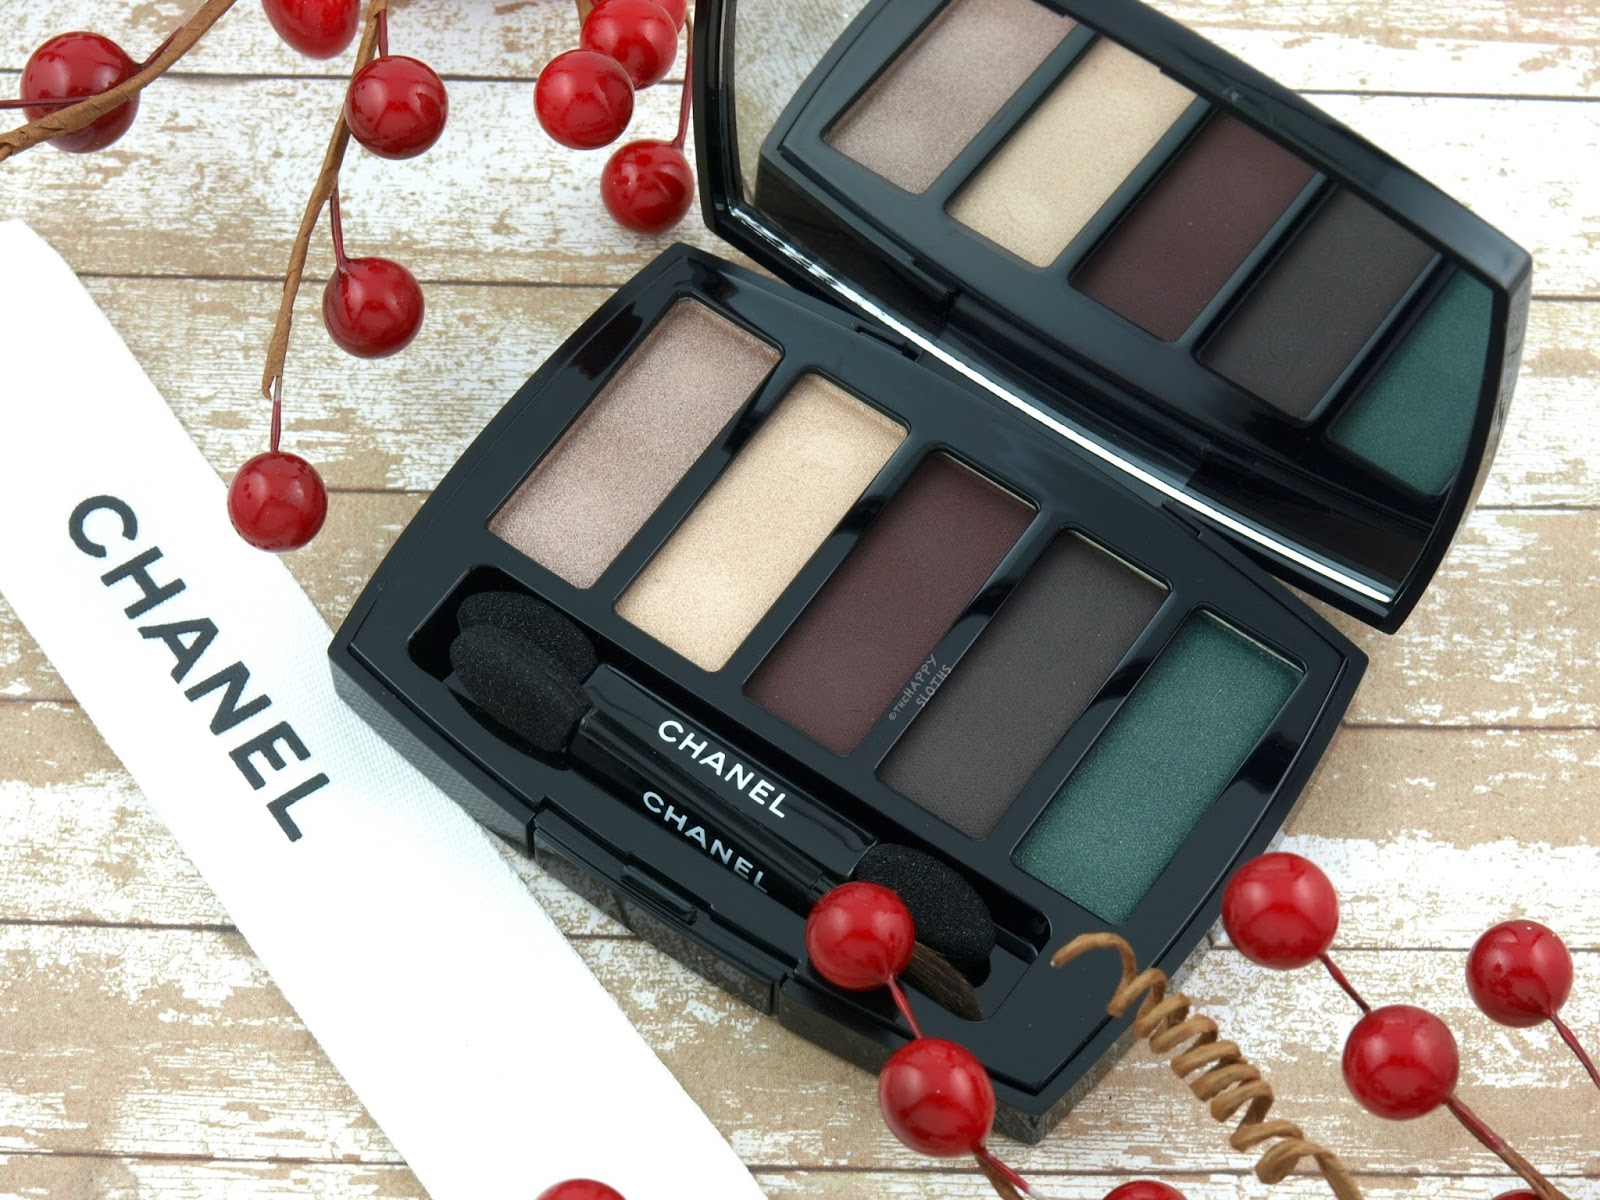 Chanel Holiday 2017 | Les 5 Ombres Eyeshadow Palette Trait de Caractere: Review and Swatches